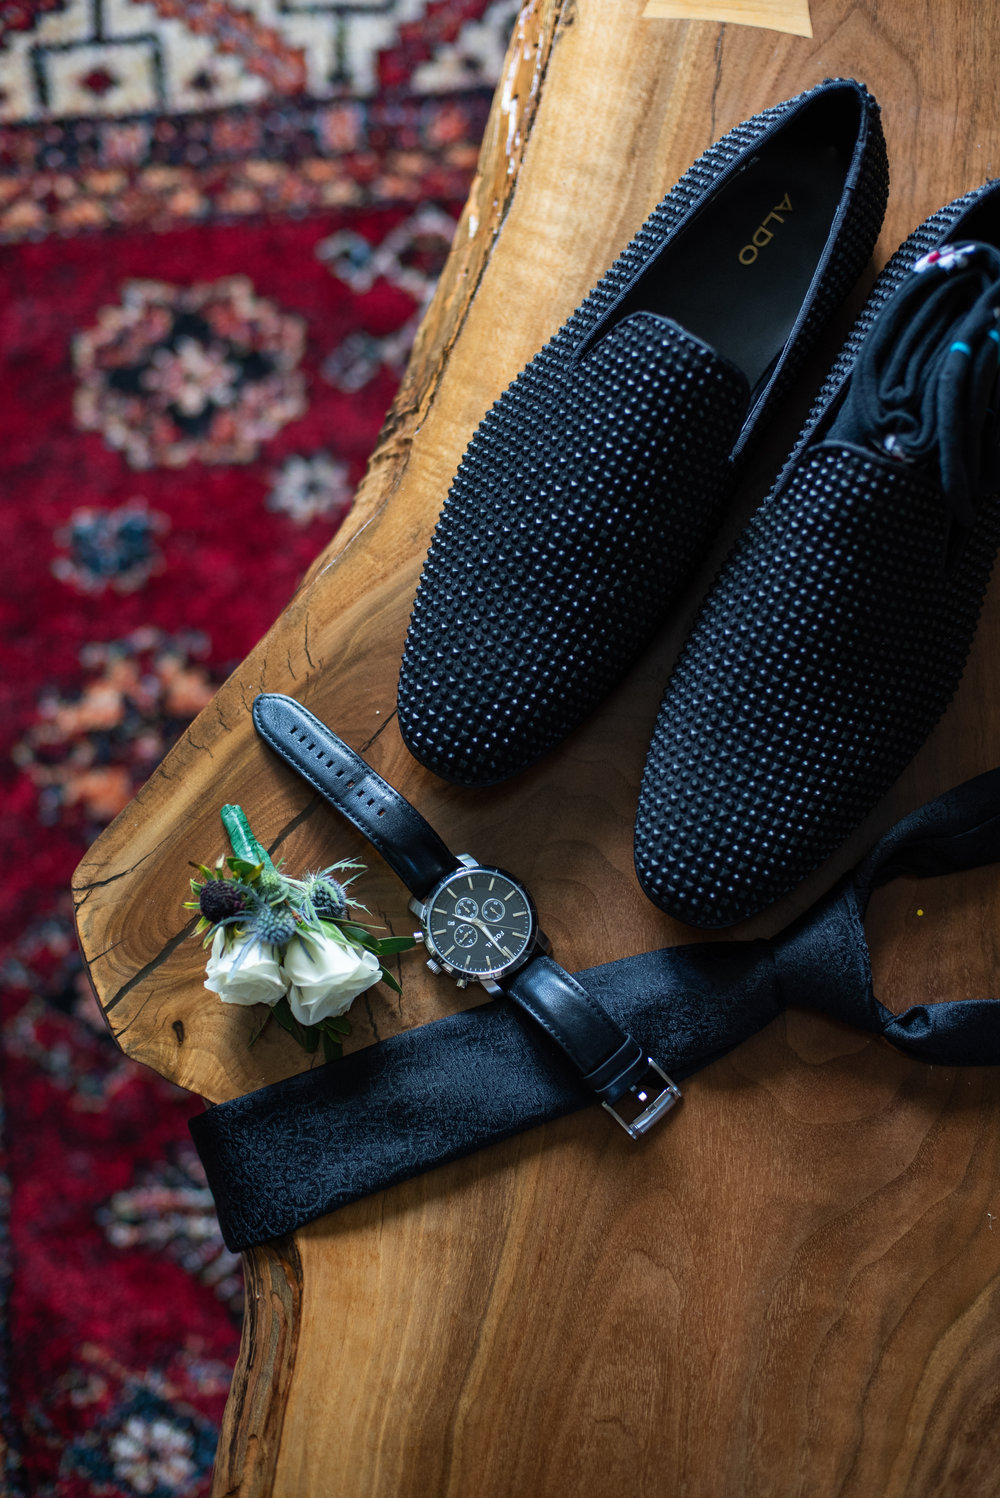 Lookout point country club wedding details with soundslikeyellowphotography